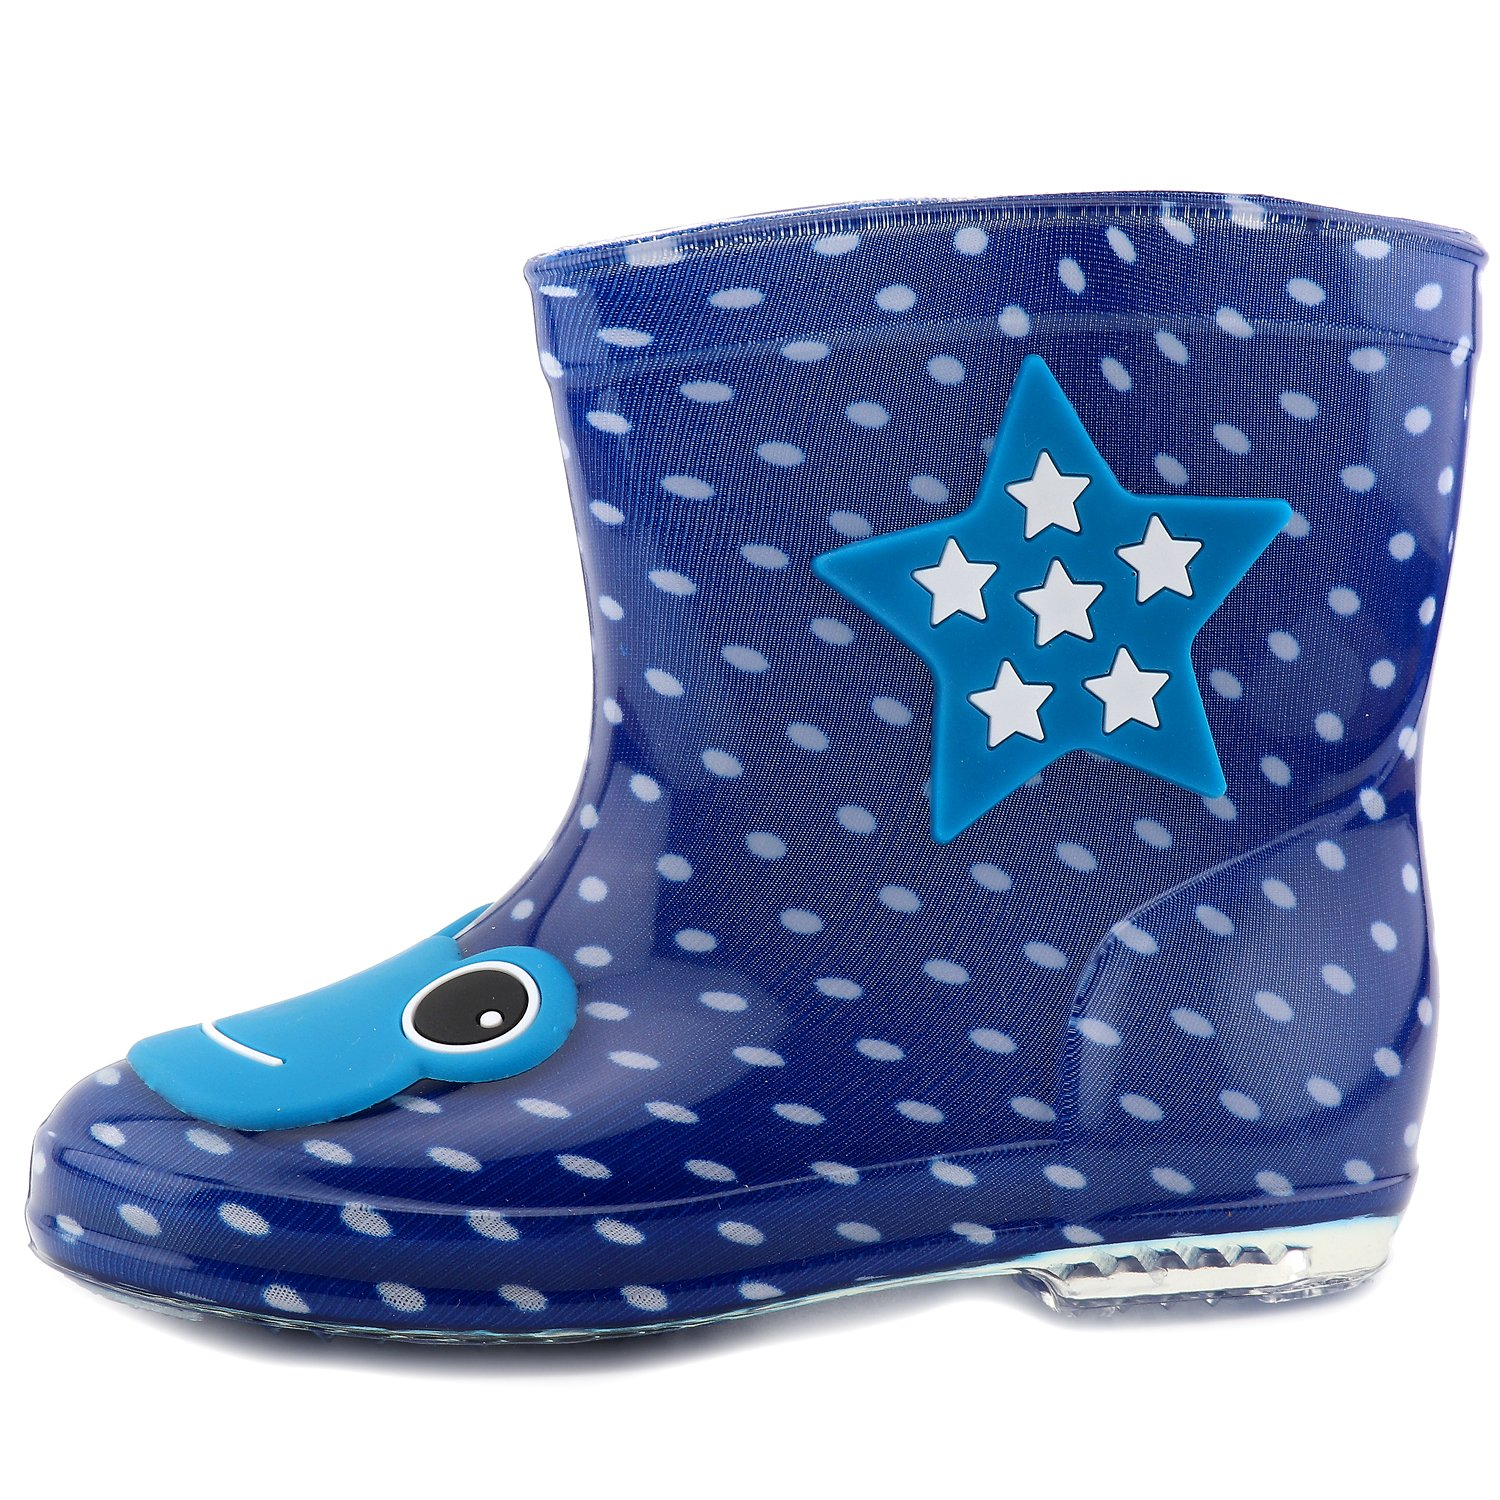 CCTWINS KIDS Toddler Girl Boy PVC Winter Warm Rain Boot for Baby Child